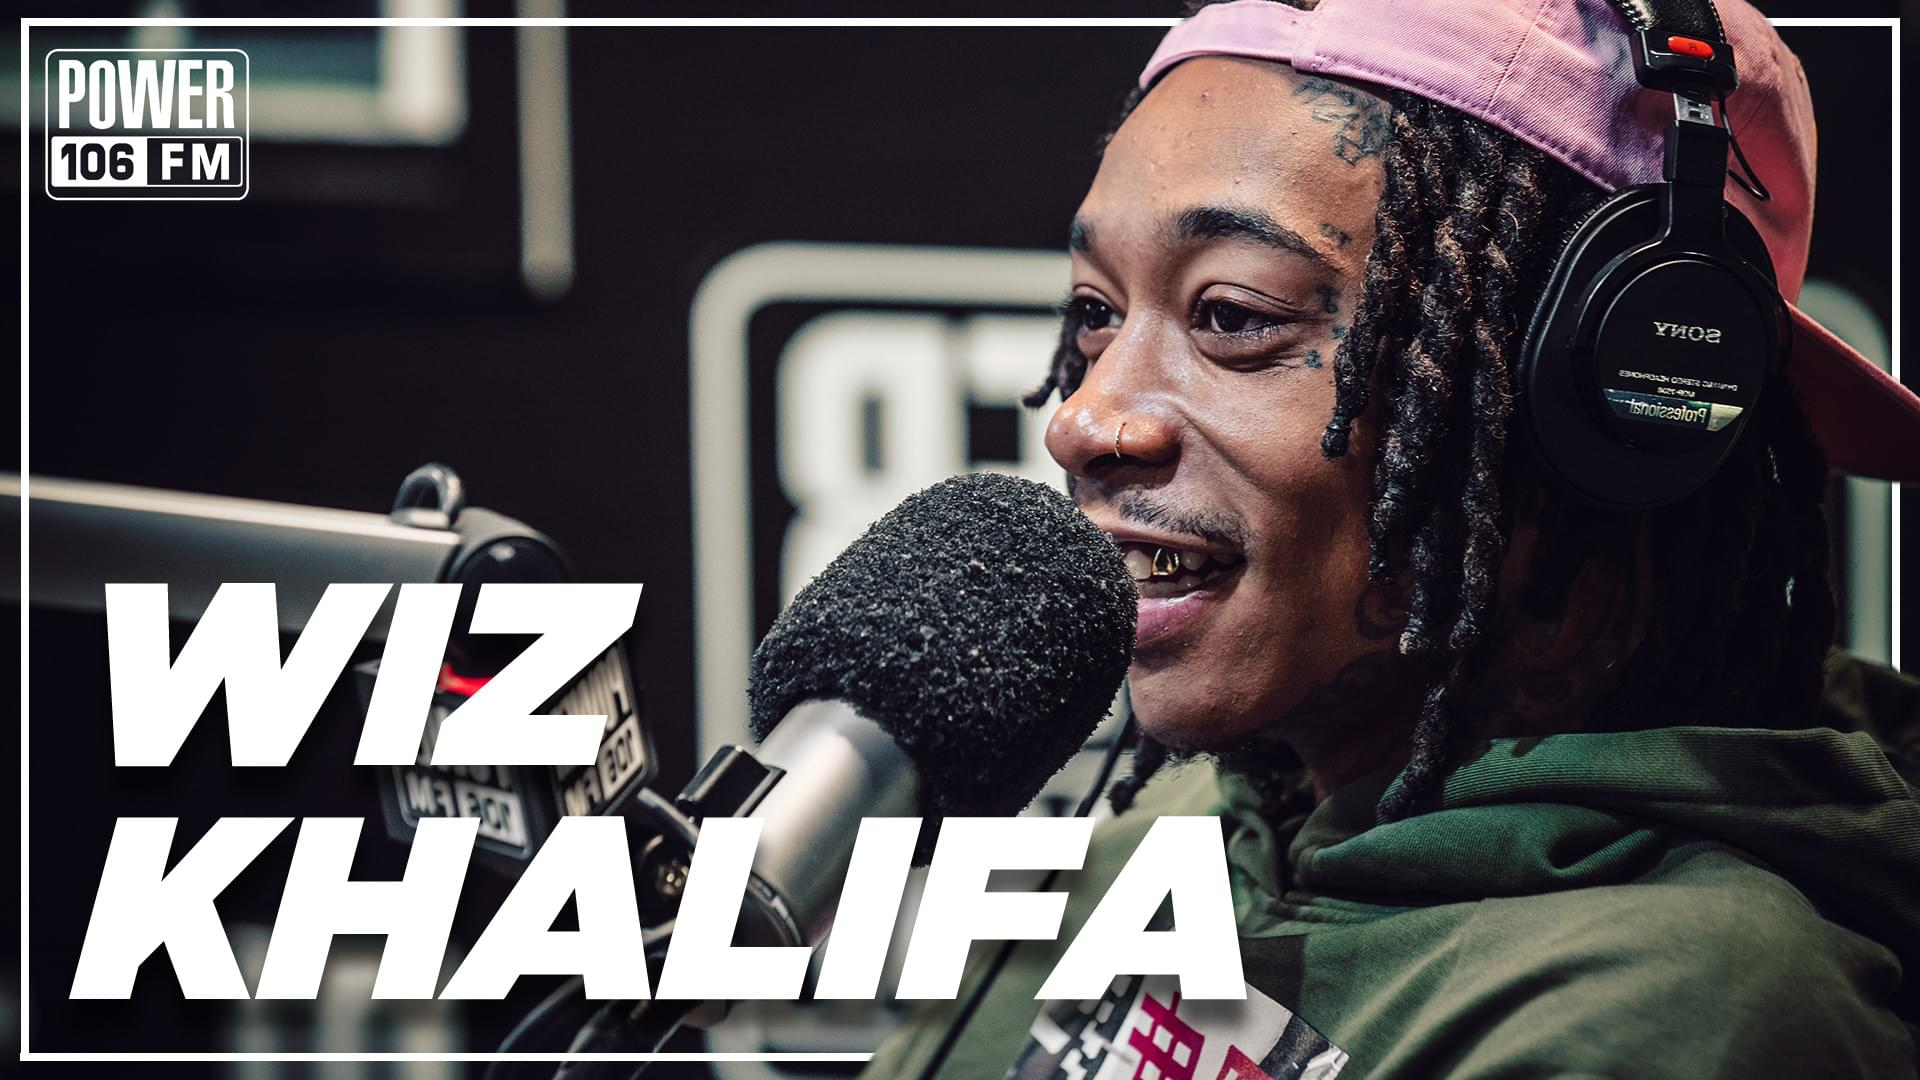 Wiz Khalifa On What He's Learned From Ty Dolla $ign, Jay-Z Trolling, New R&B Project